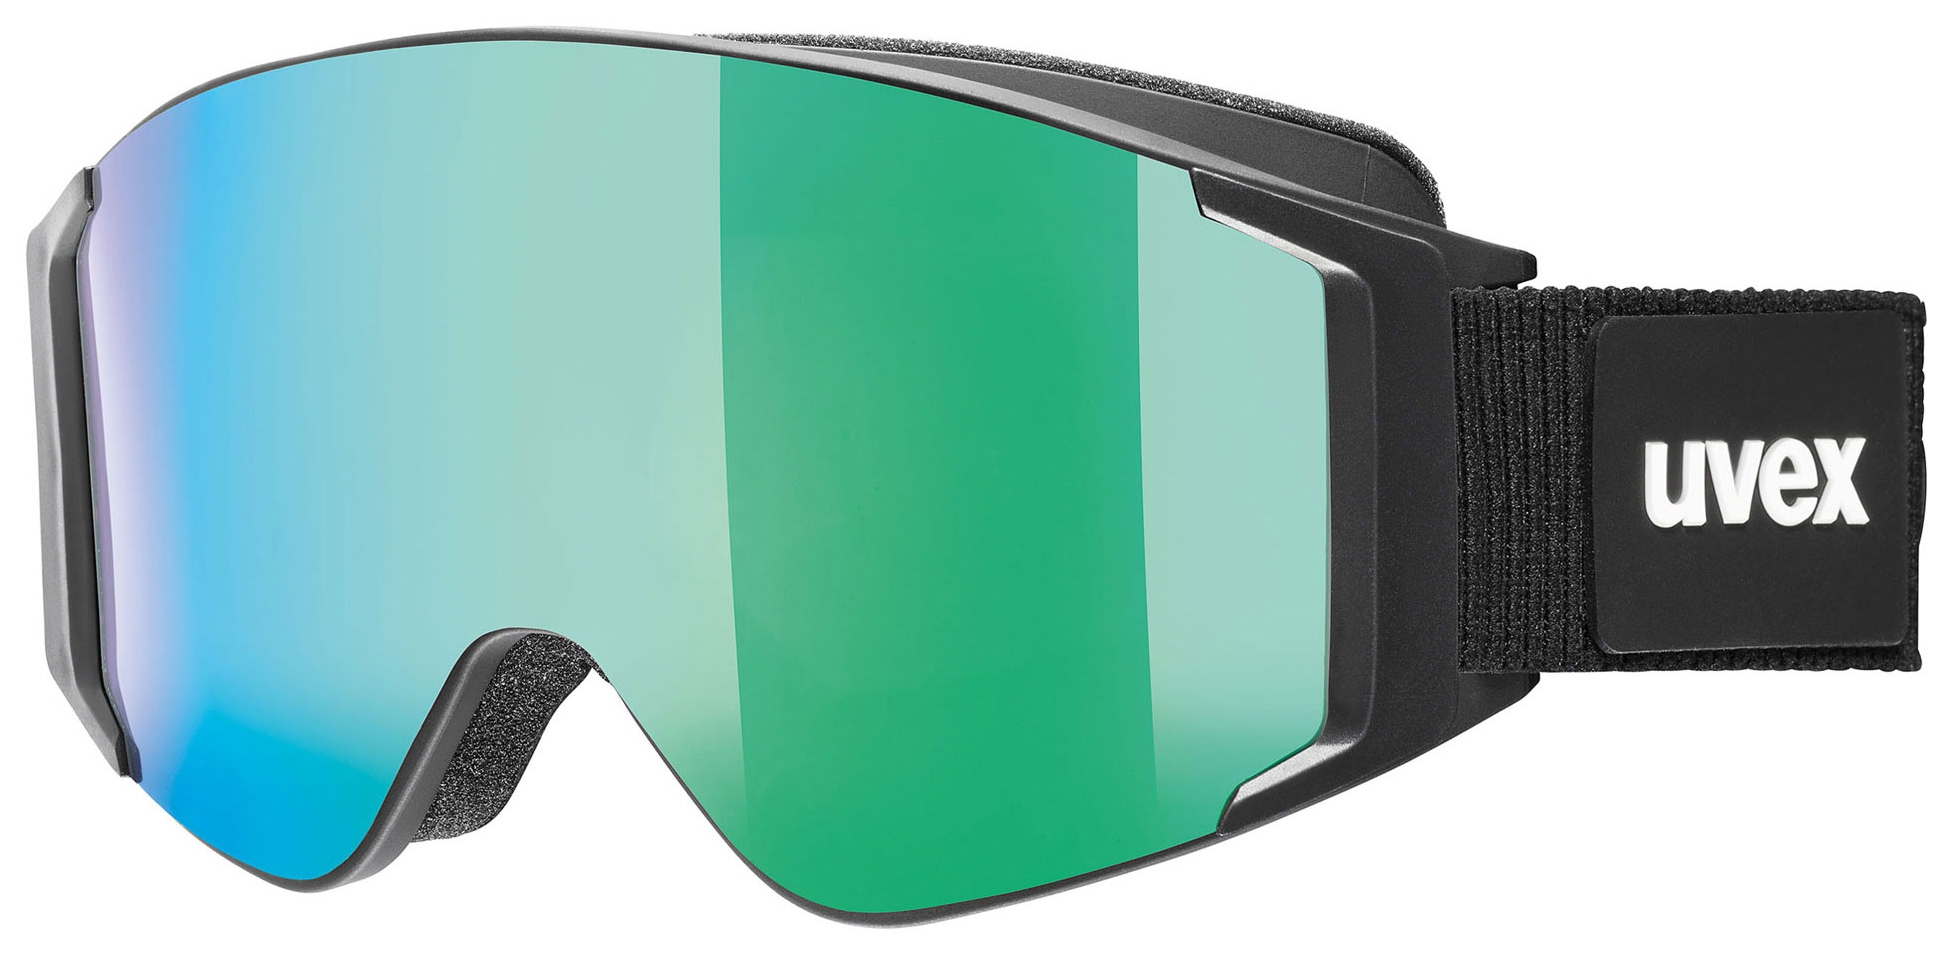 Uvex G.GL 3000 TO Mirror Green 5030